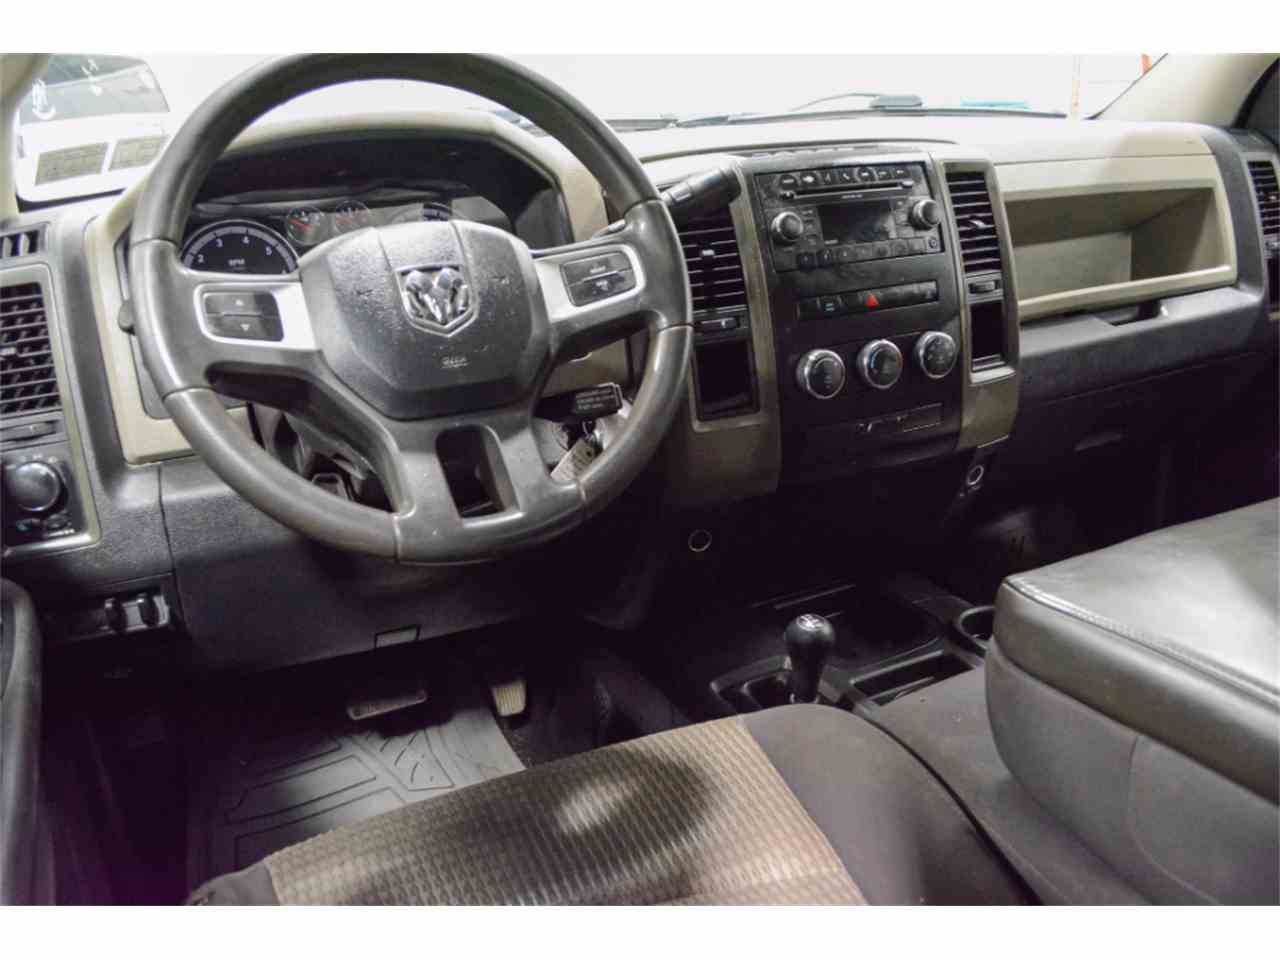 Large Picture of '11 Dodge Ram 2500 - $9,988.00 Offered by John Kufleitner's Galleria - ME58